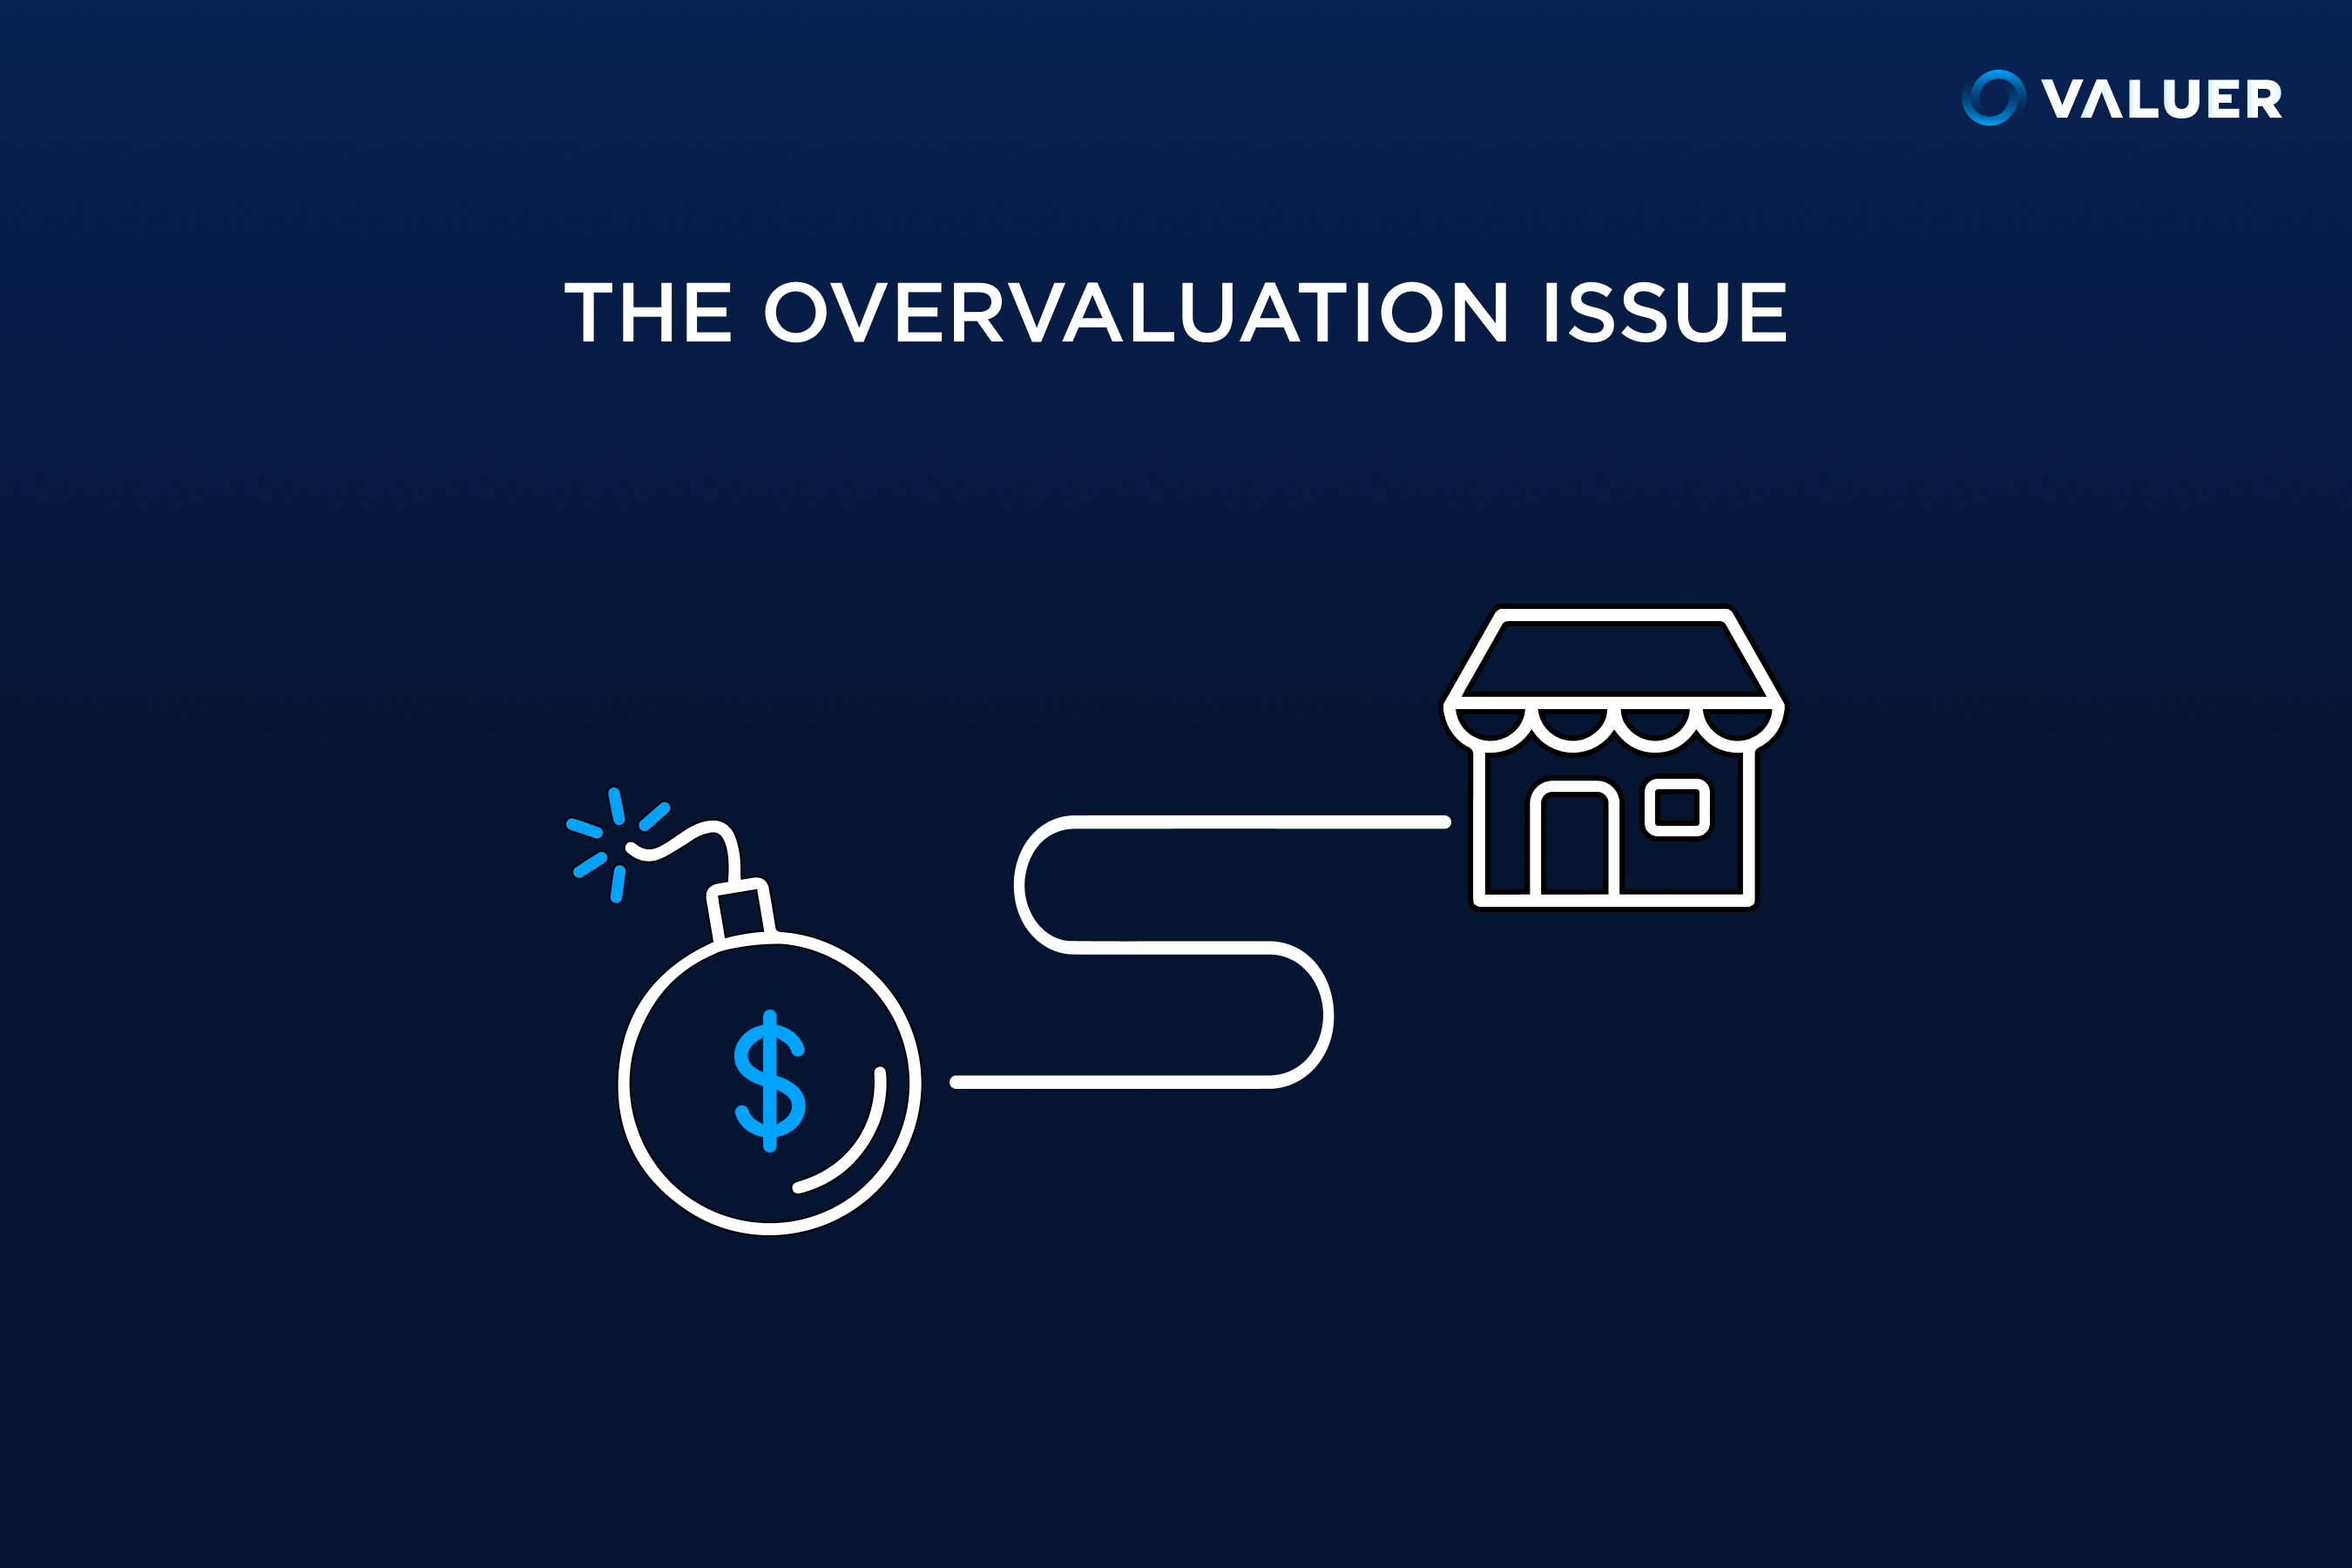 the overvaluation issue and a cartoon bomb with a cash symbol connected to a business